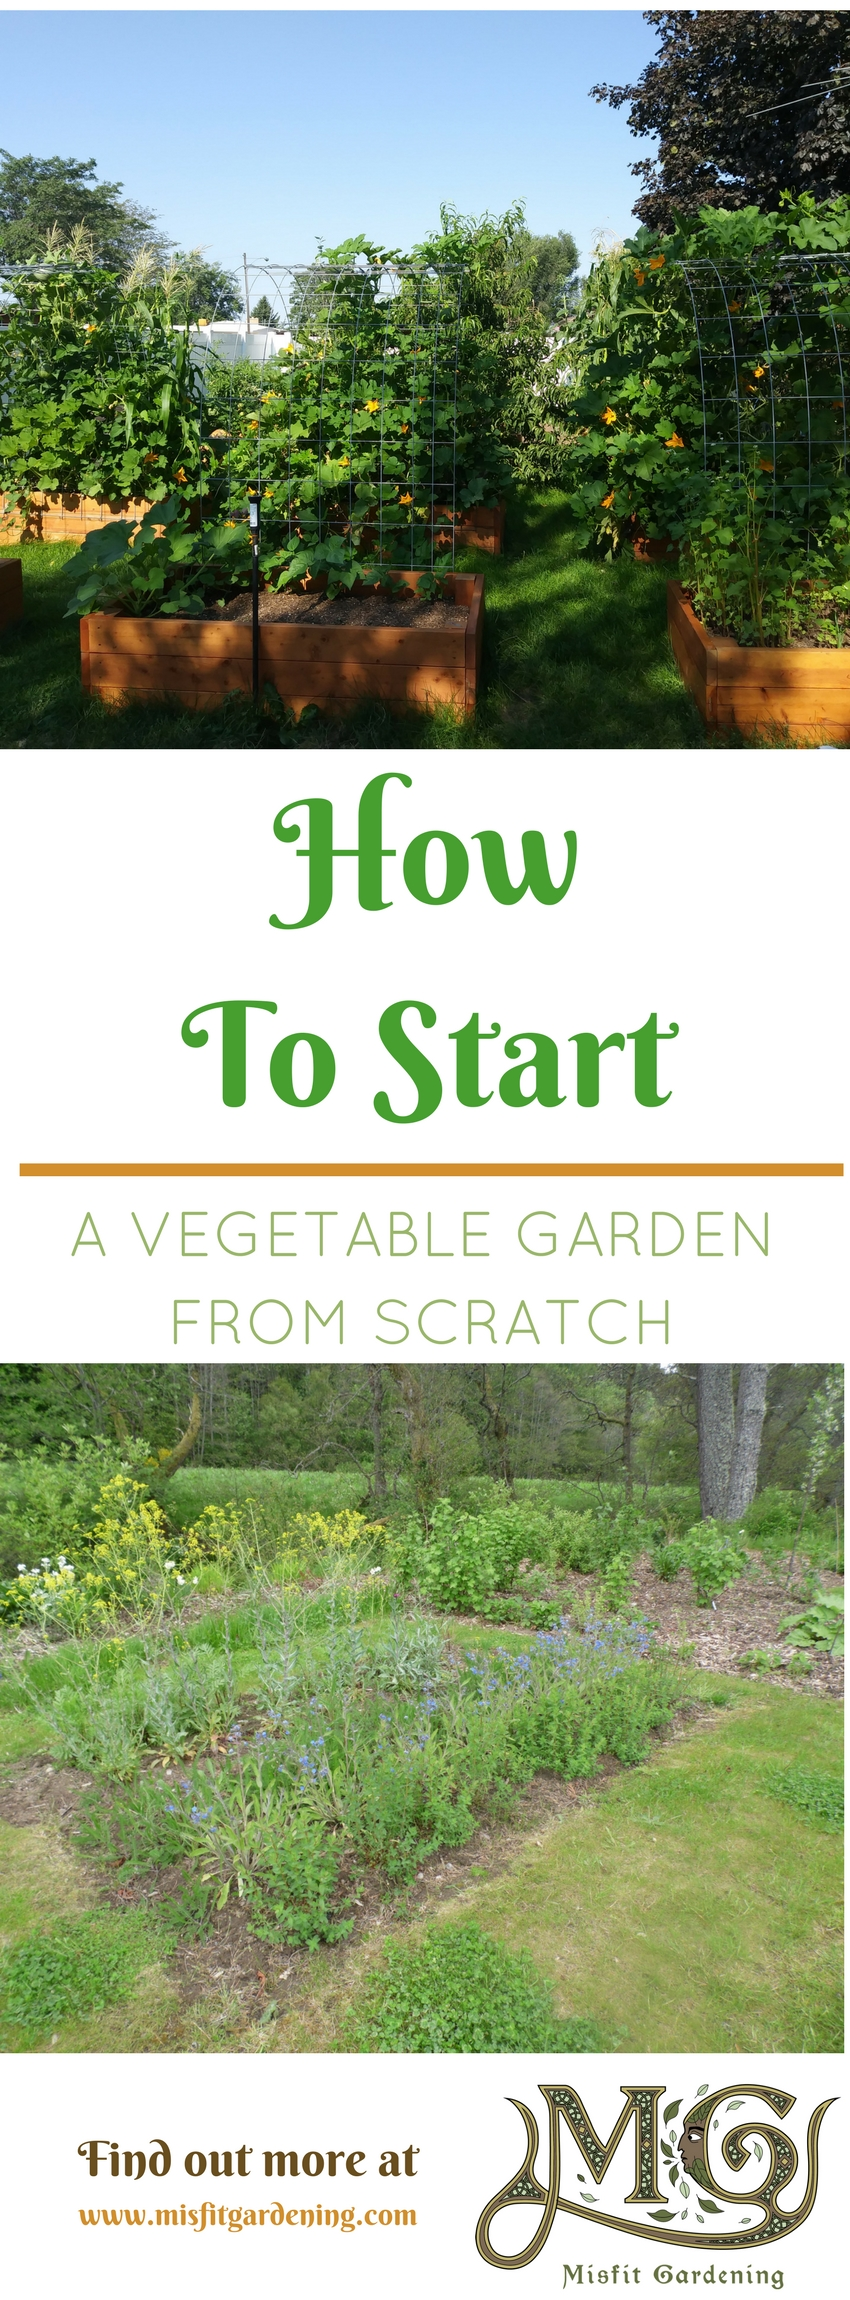 How To Start A Vegetable Garden From Scratch In 6 Easy Steps. Click To Find